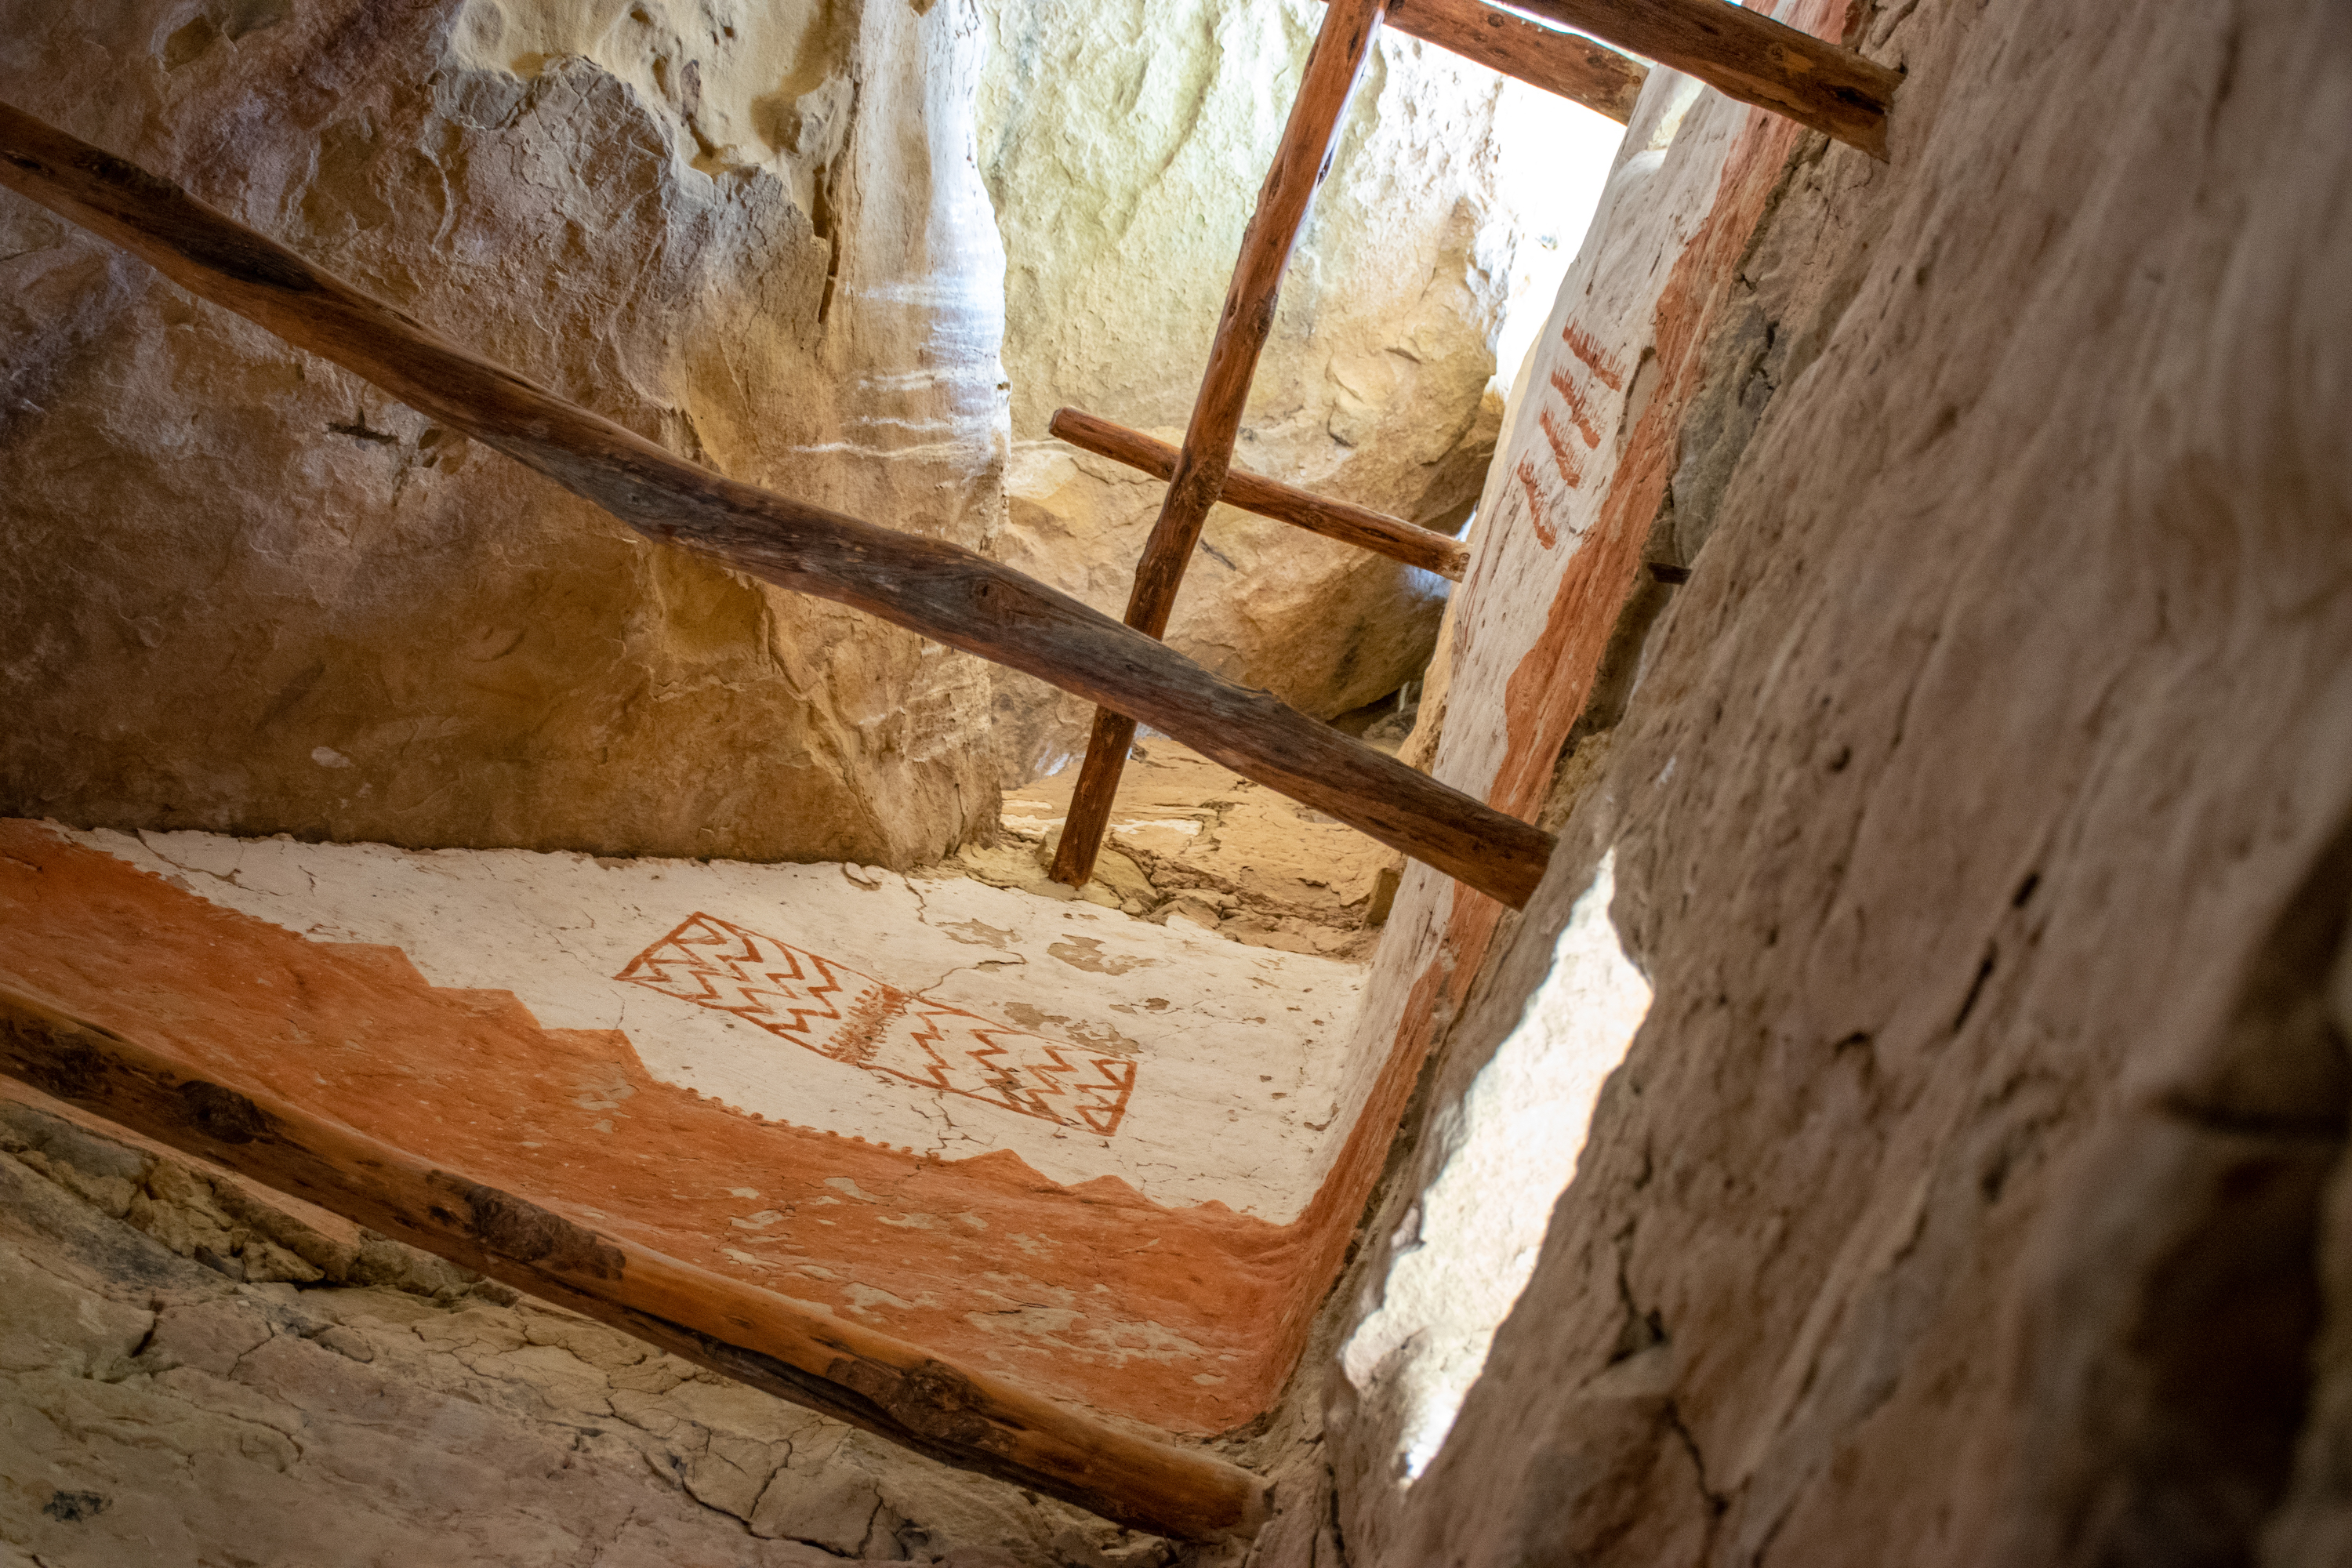 Inside of one of the buildings in Cliff Palace with drawings on the walls